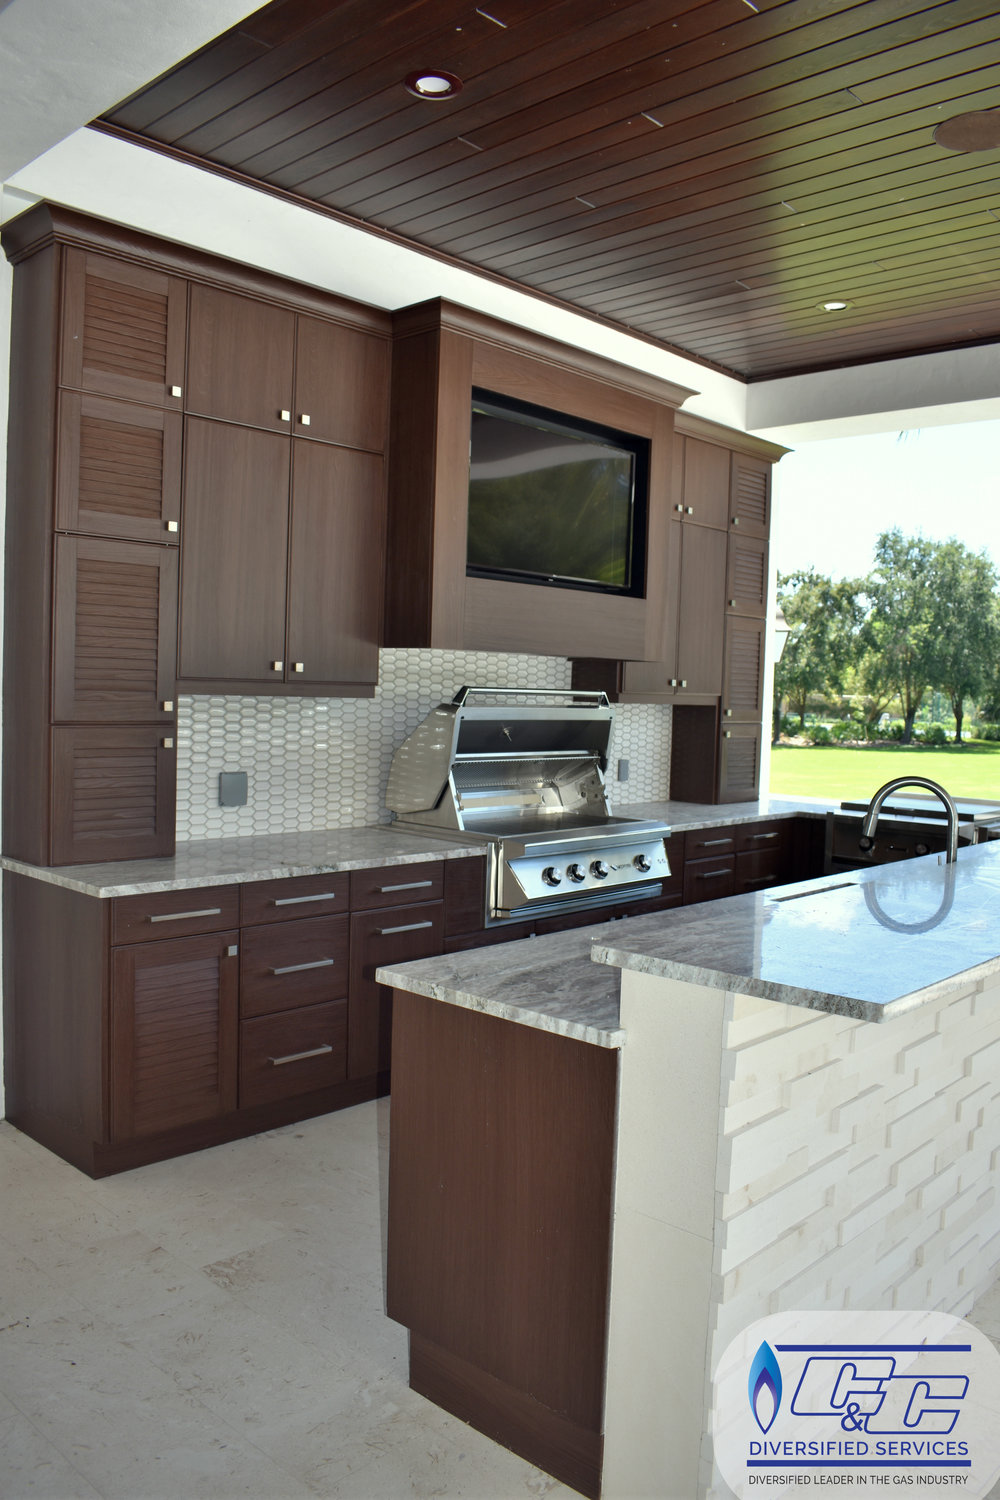 NatureKast Weatherproof Cabinetry in Espresso Finish